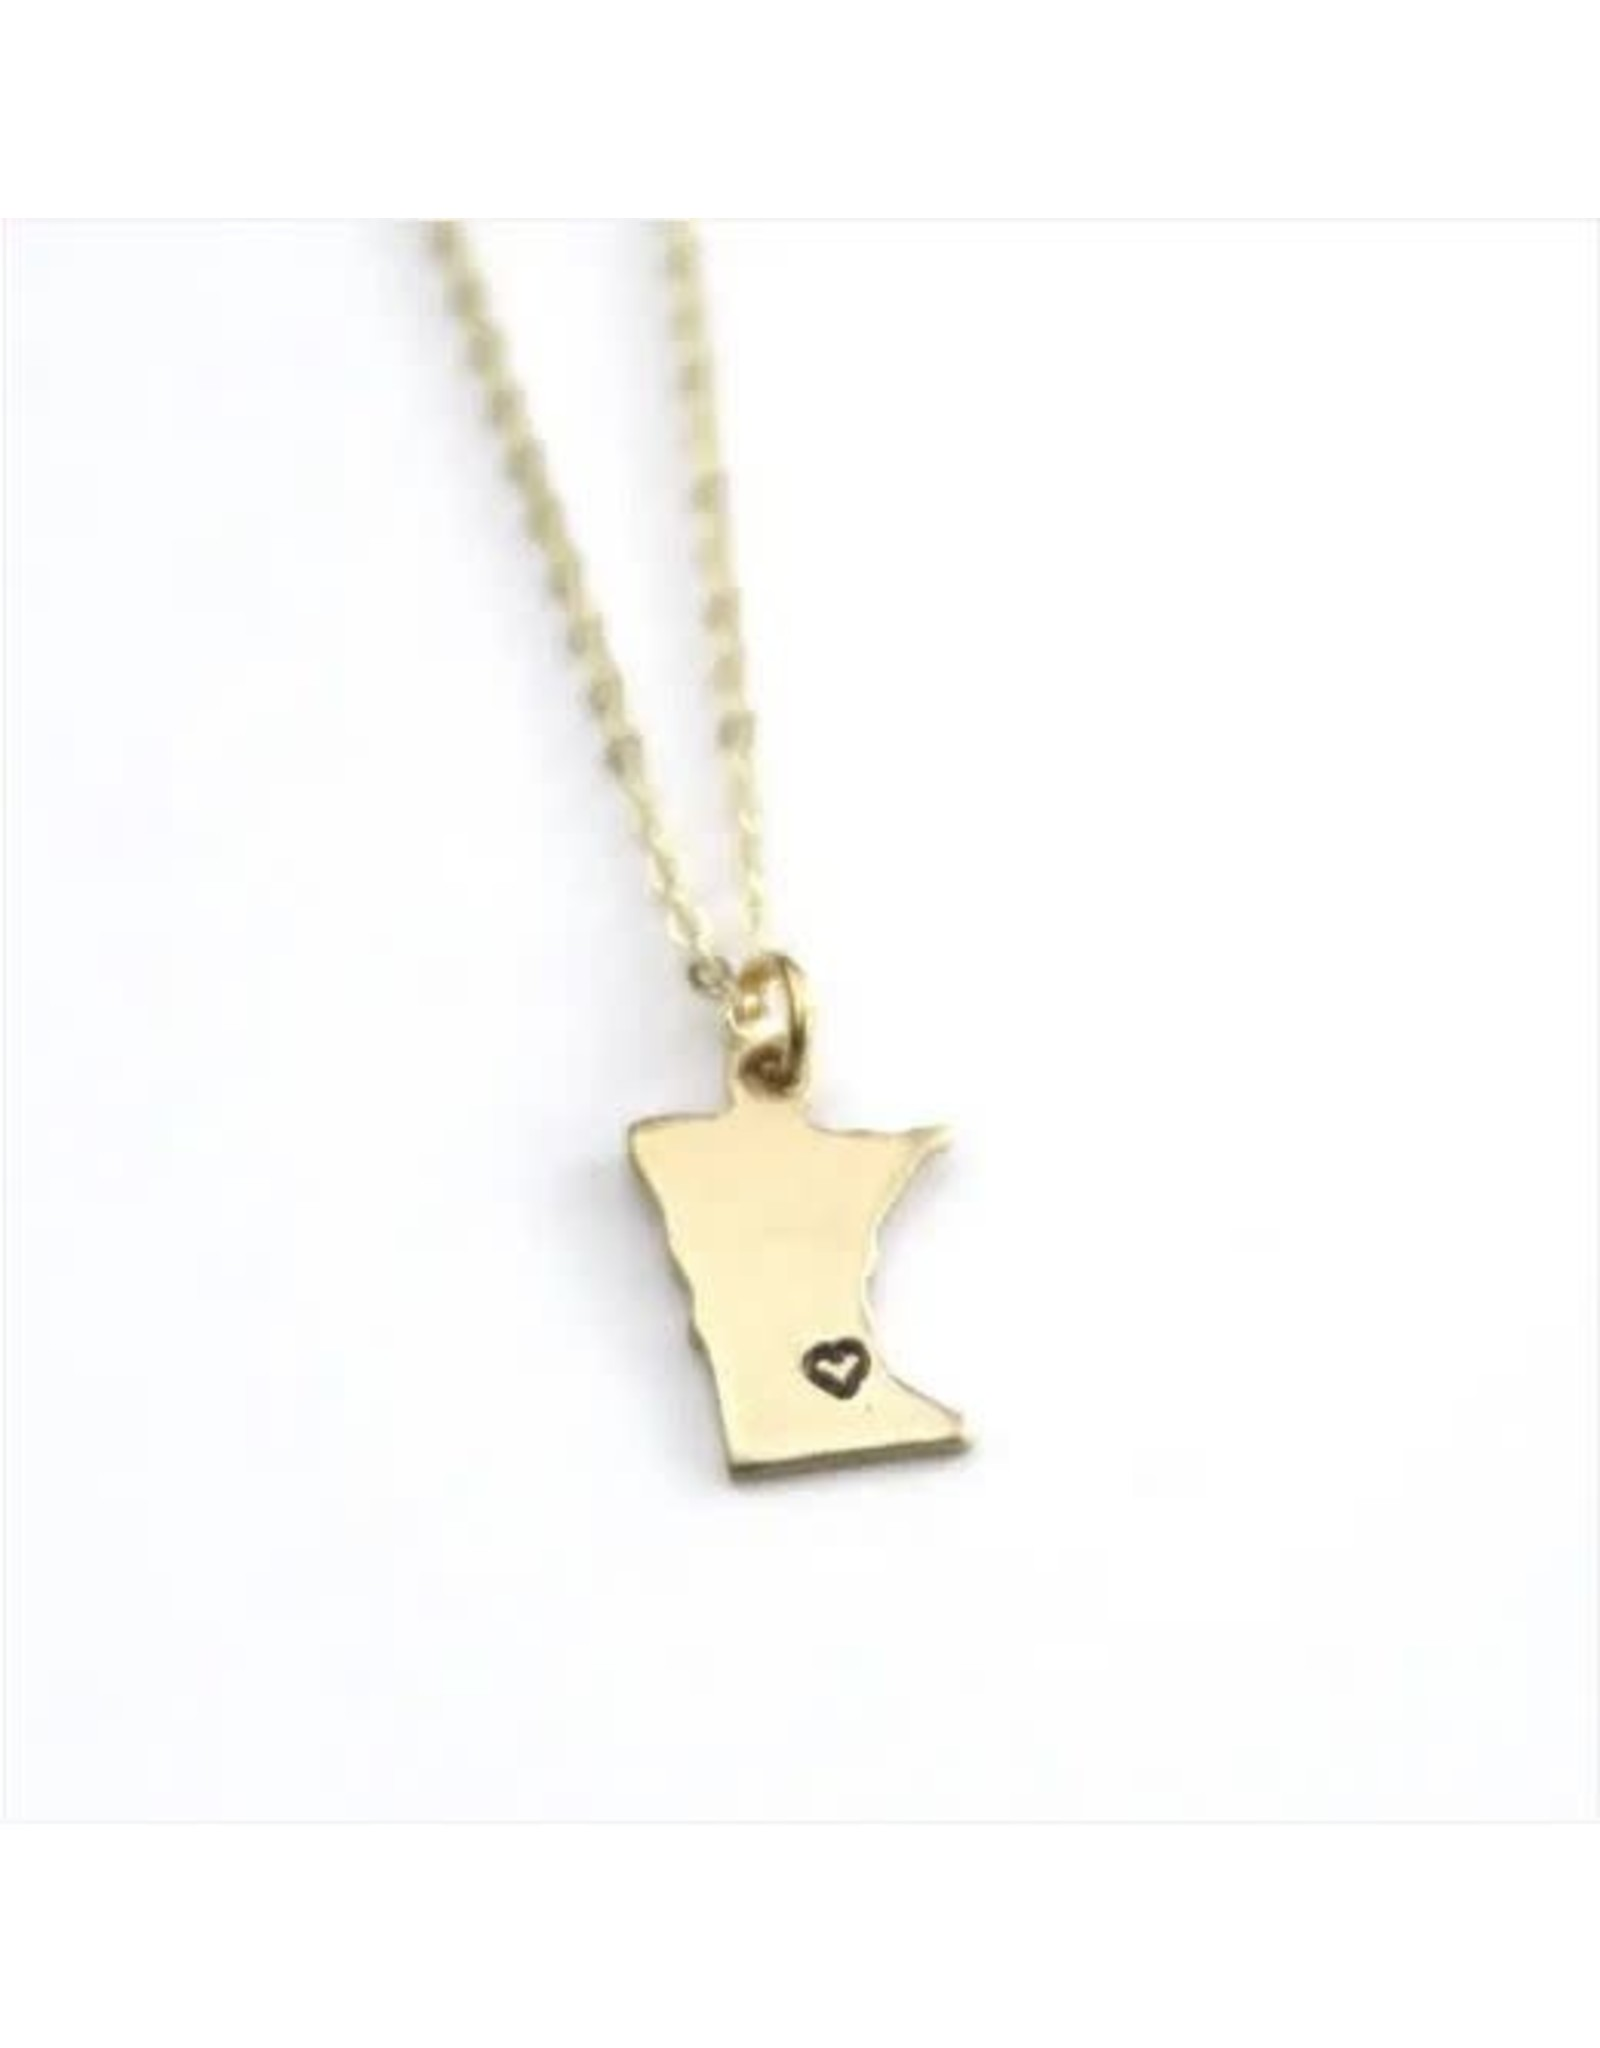 MINNESOTA GOLD HEART NECKLACE